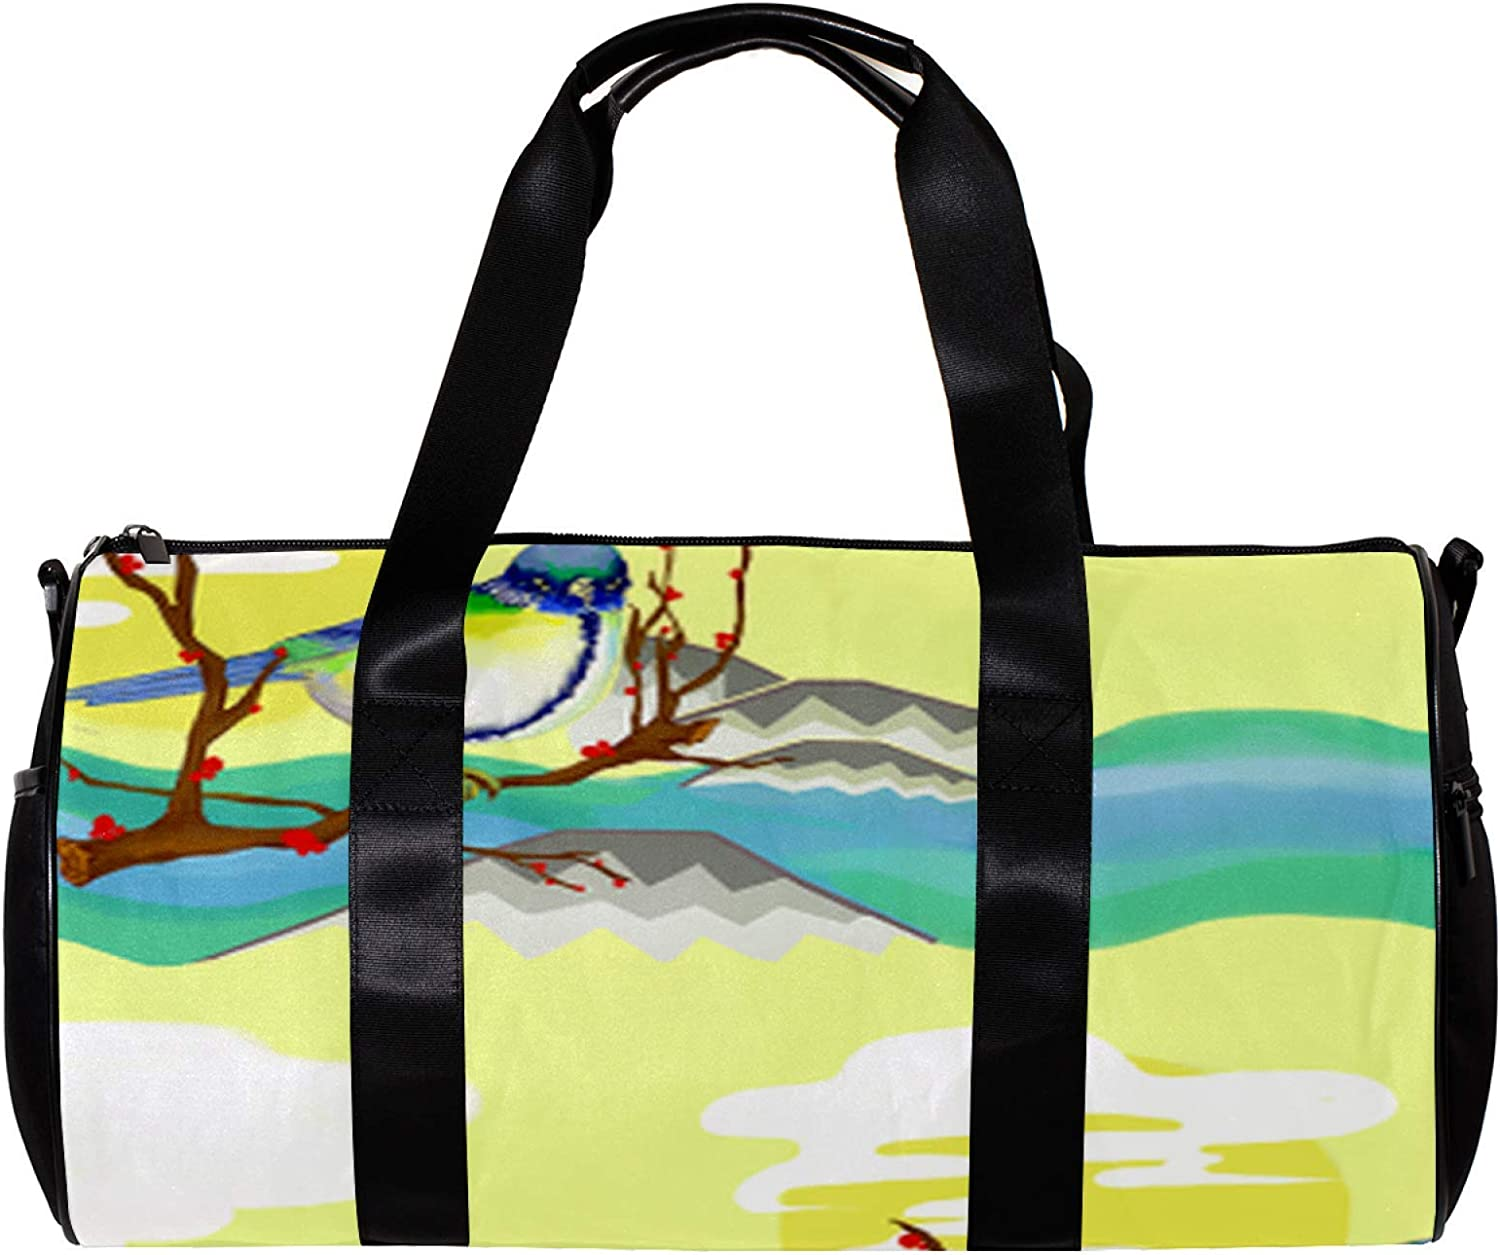 LEVEIS Lowland Bird Sports Duffel Bag Gorgeous on Travel Tote Weeke Carry 25% OFF